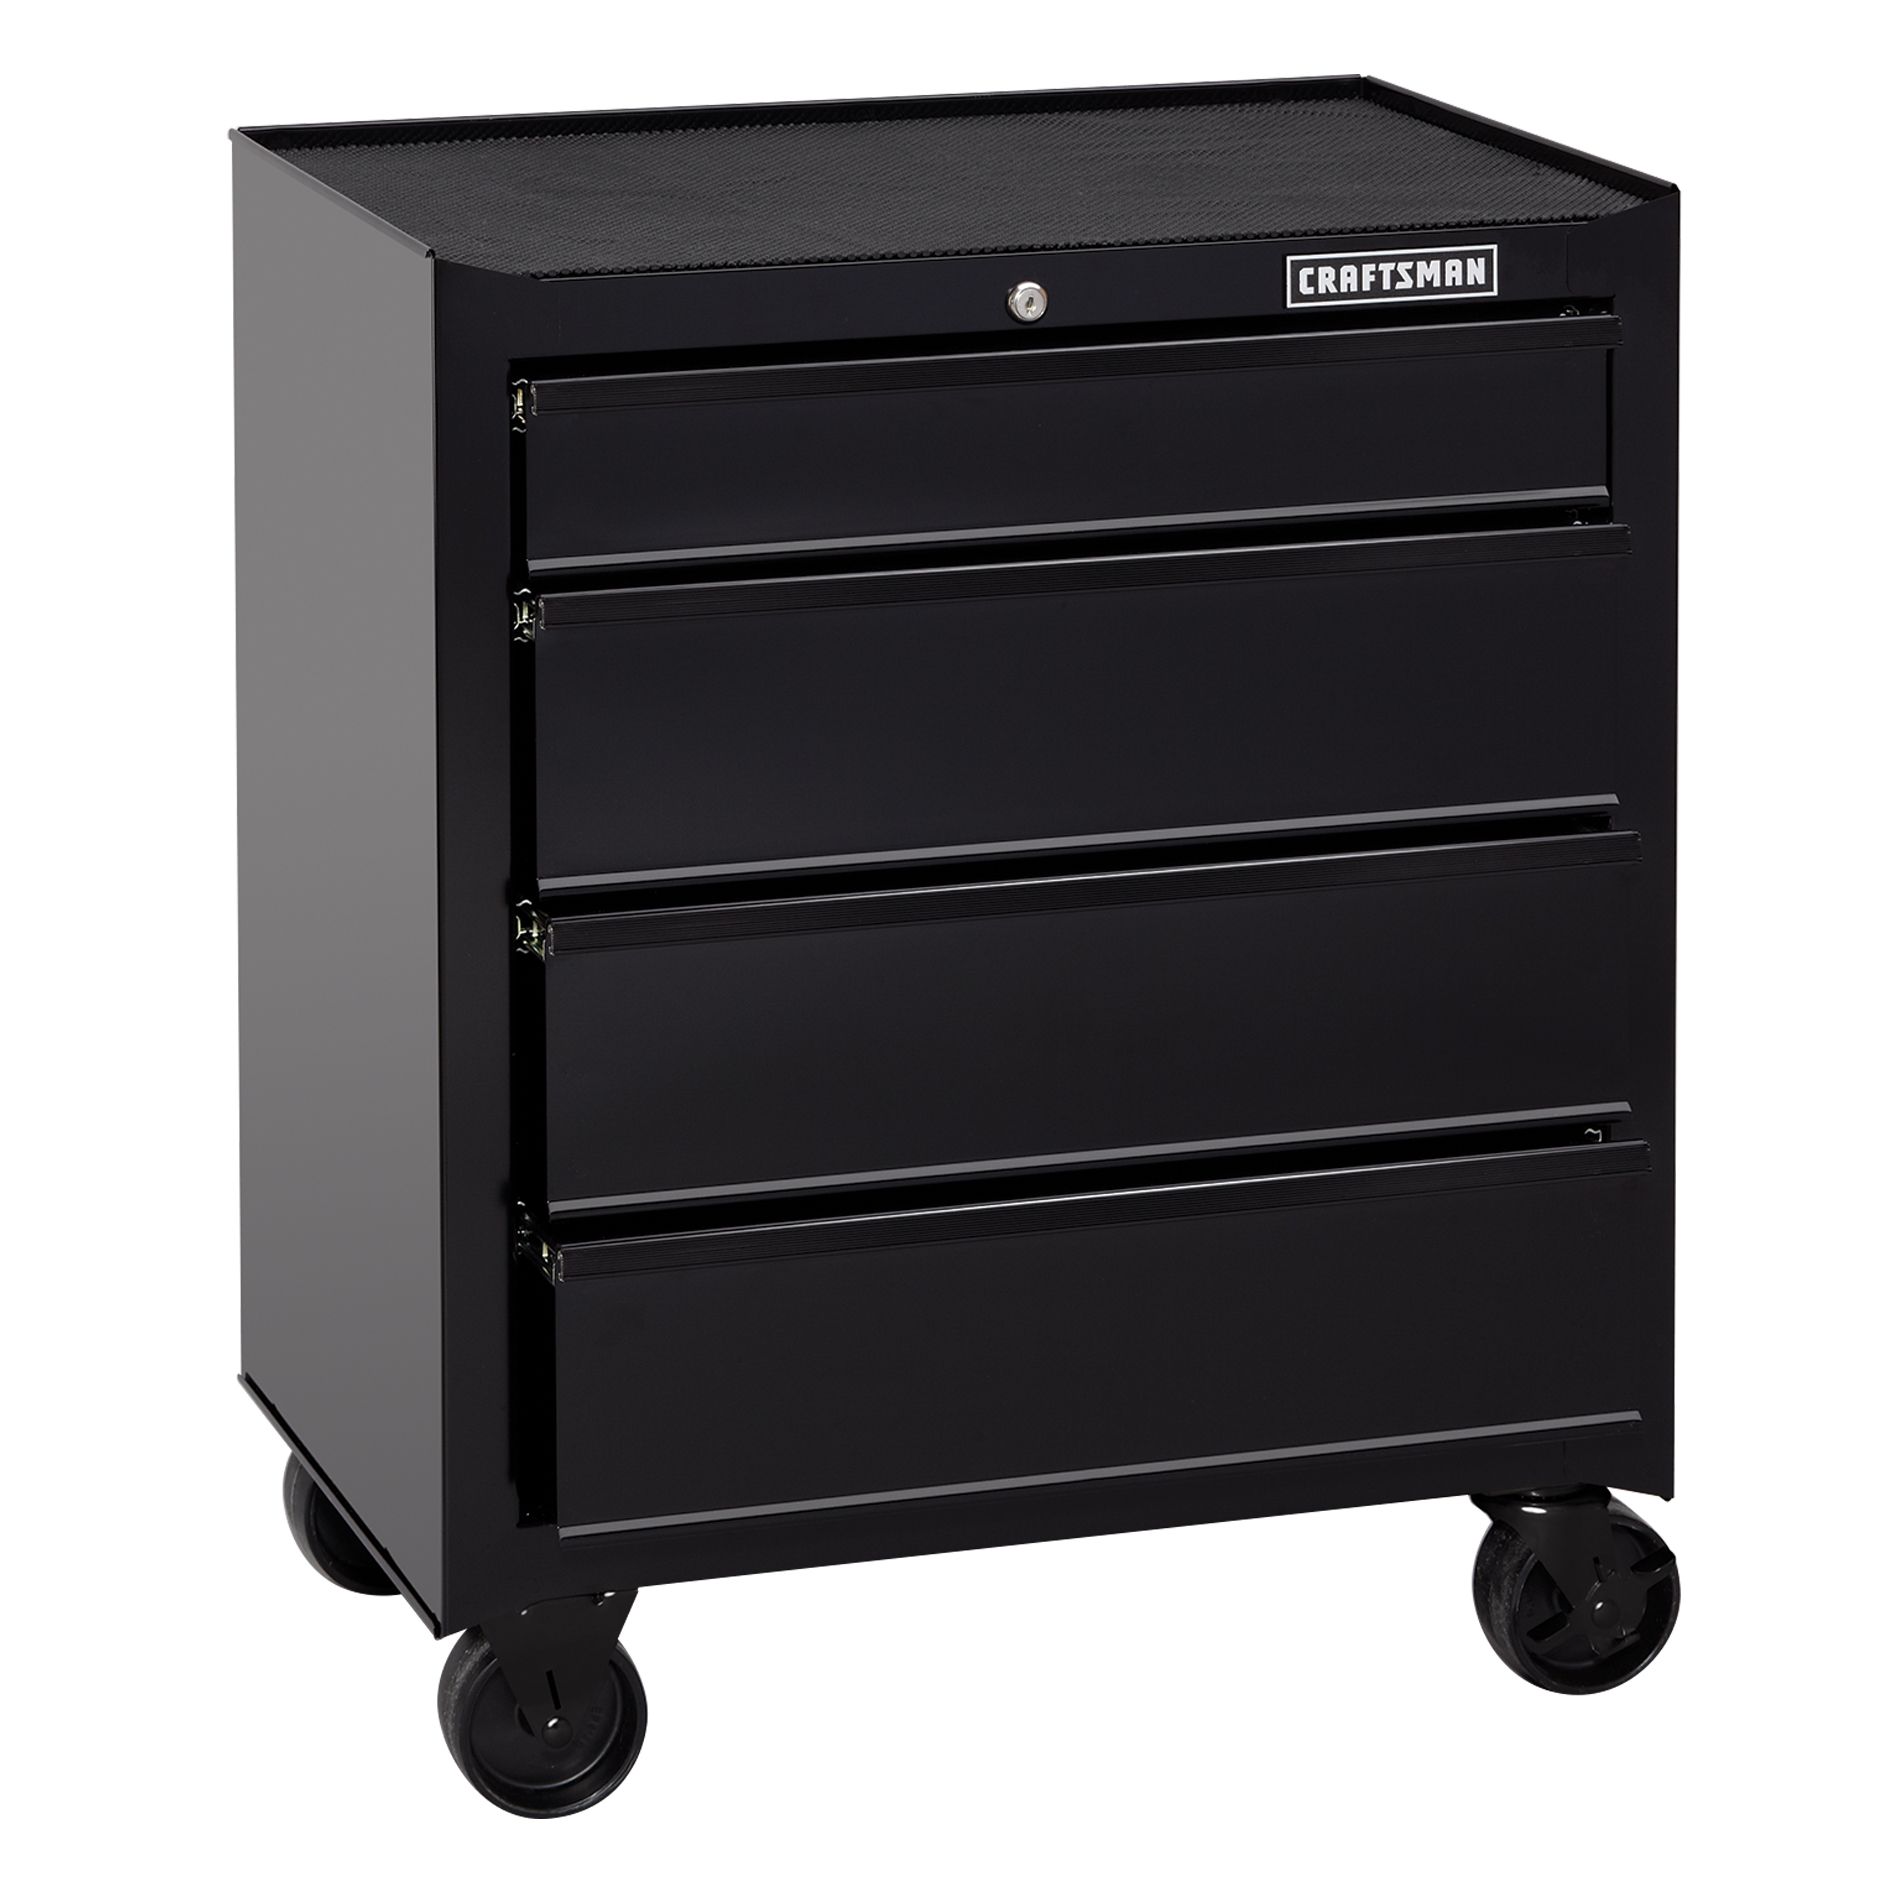 Craftsman 26 in. Wide 4-Drawer Standard Duty Ball-Bearing Rolling Tool Cabinet - Black